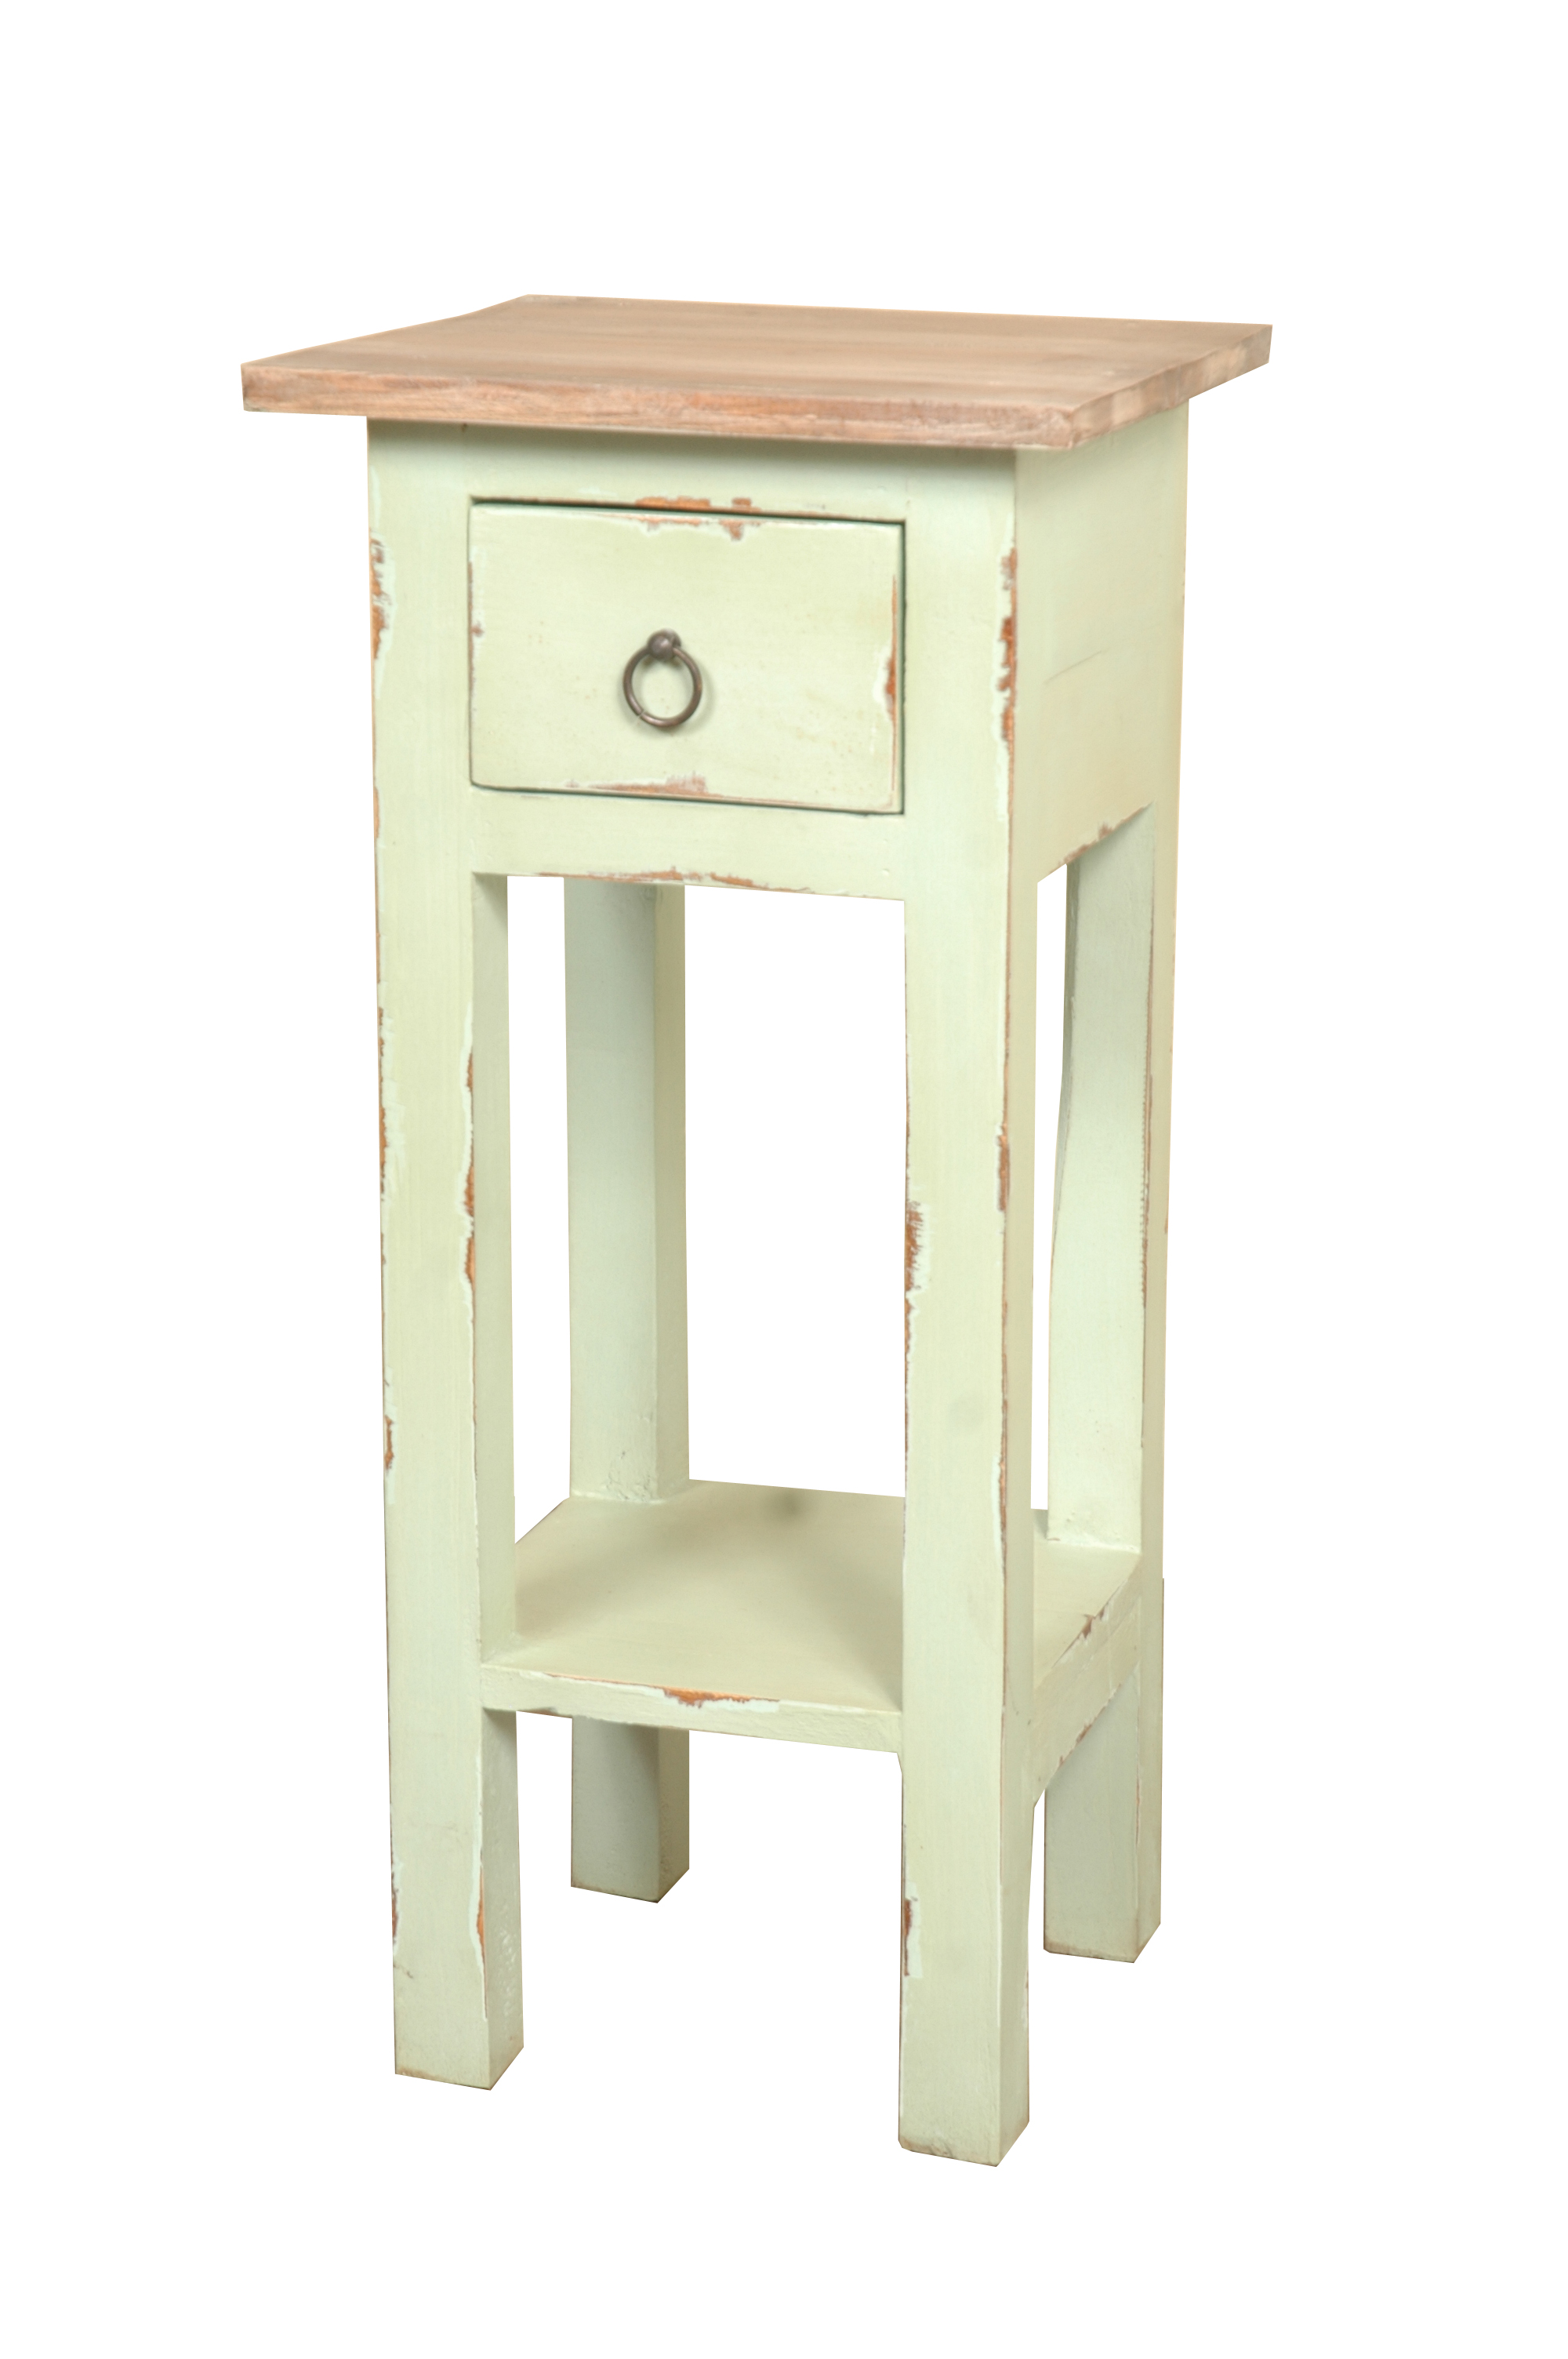 sunset trading cottage narrow side table elephant accent long thin mirrored bedside cabinets lighting portland glass end tables and coffee cordless battery operated lamps small